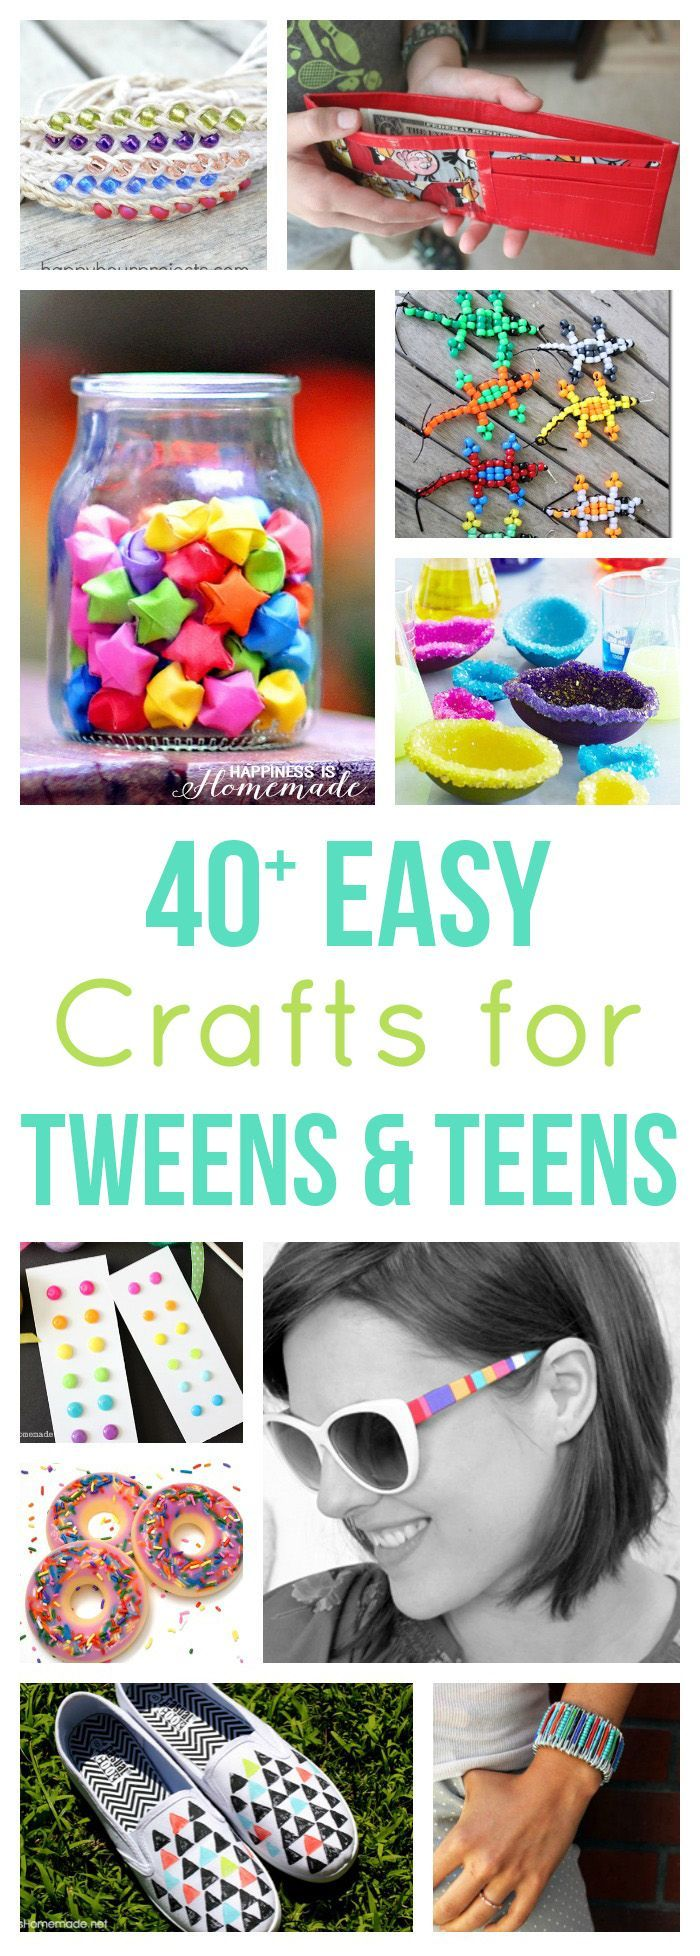 40+ Easy Crafts for Teens & Tweens - Happiness is Homemade